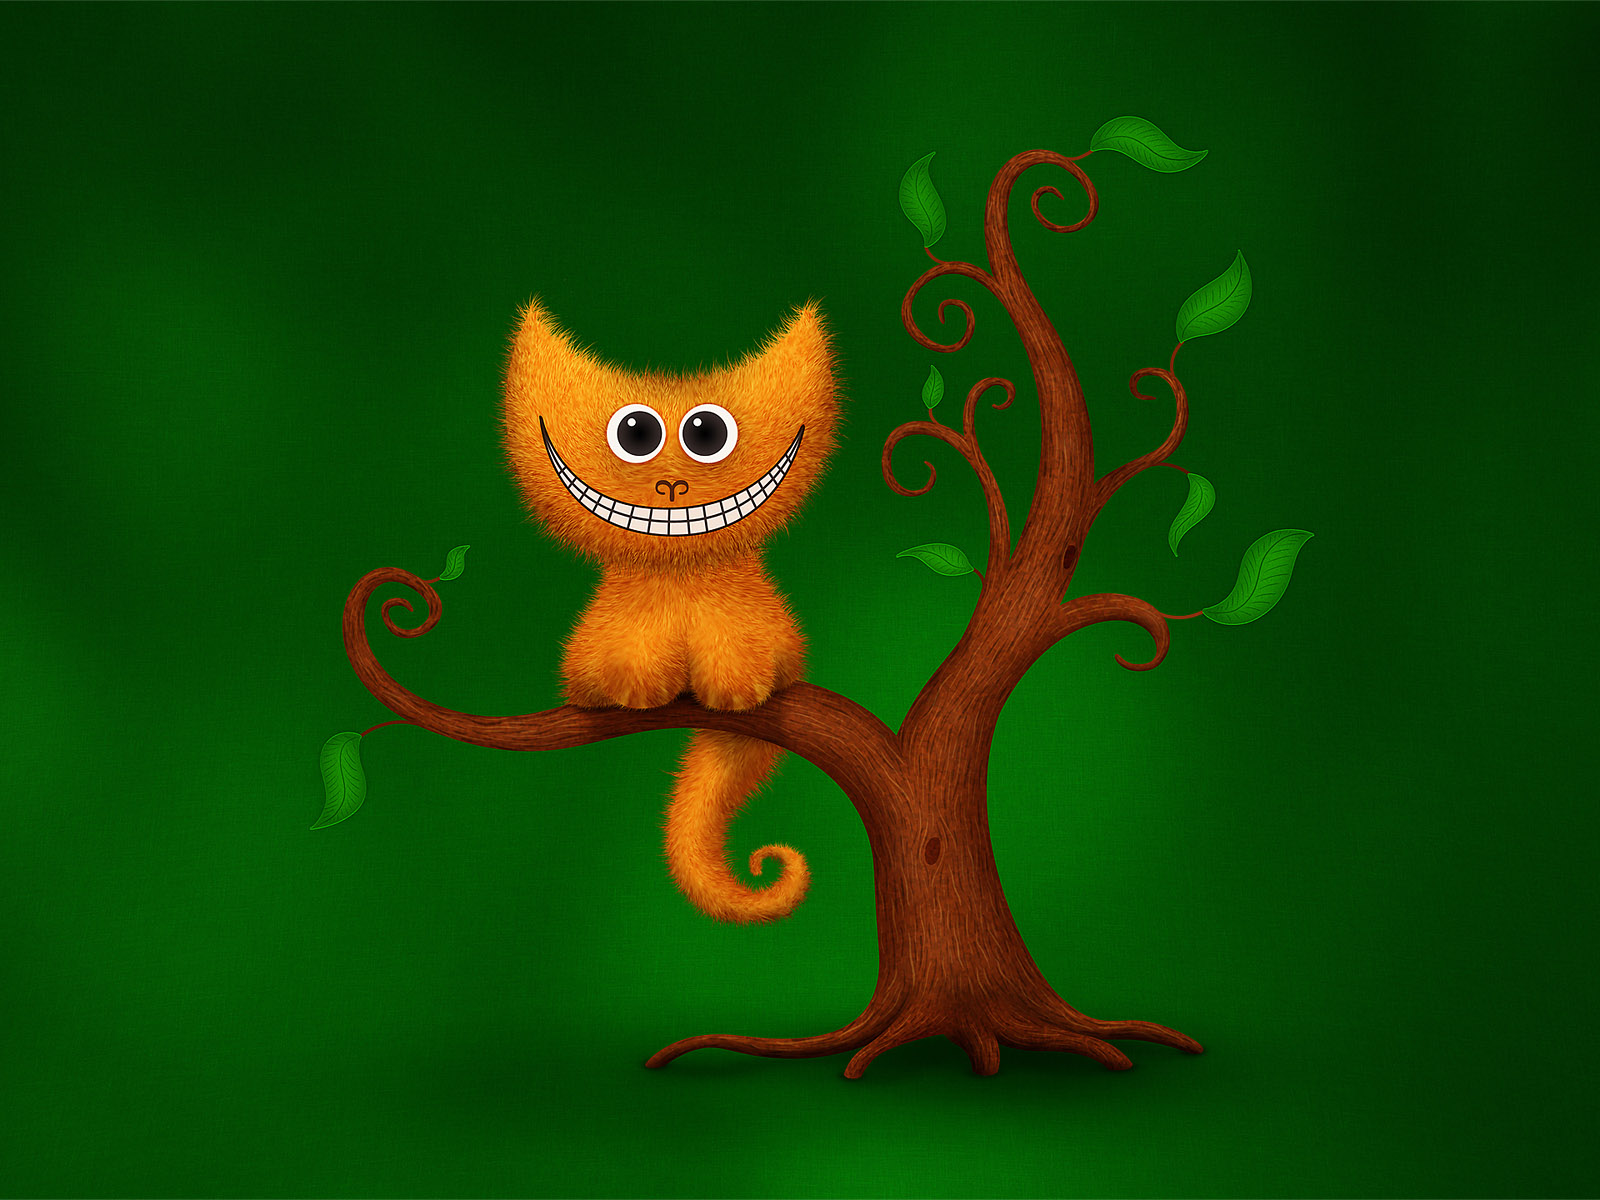 Funny Cartoon Cat Wallpaper 1600x1200